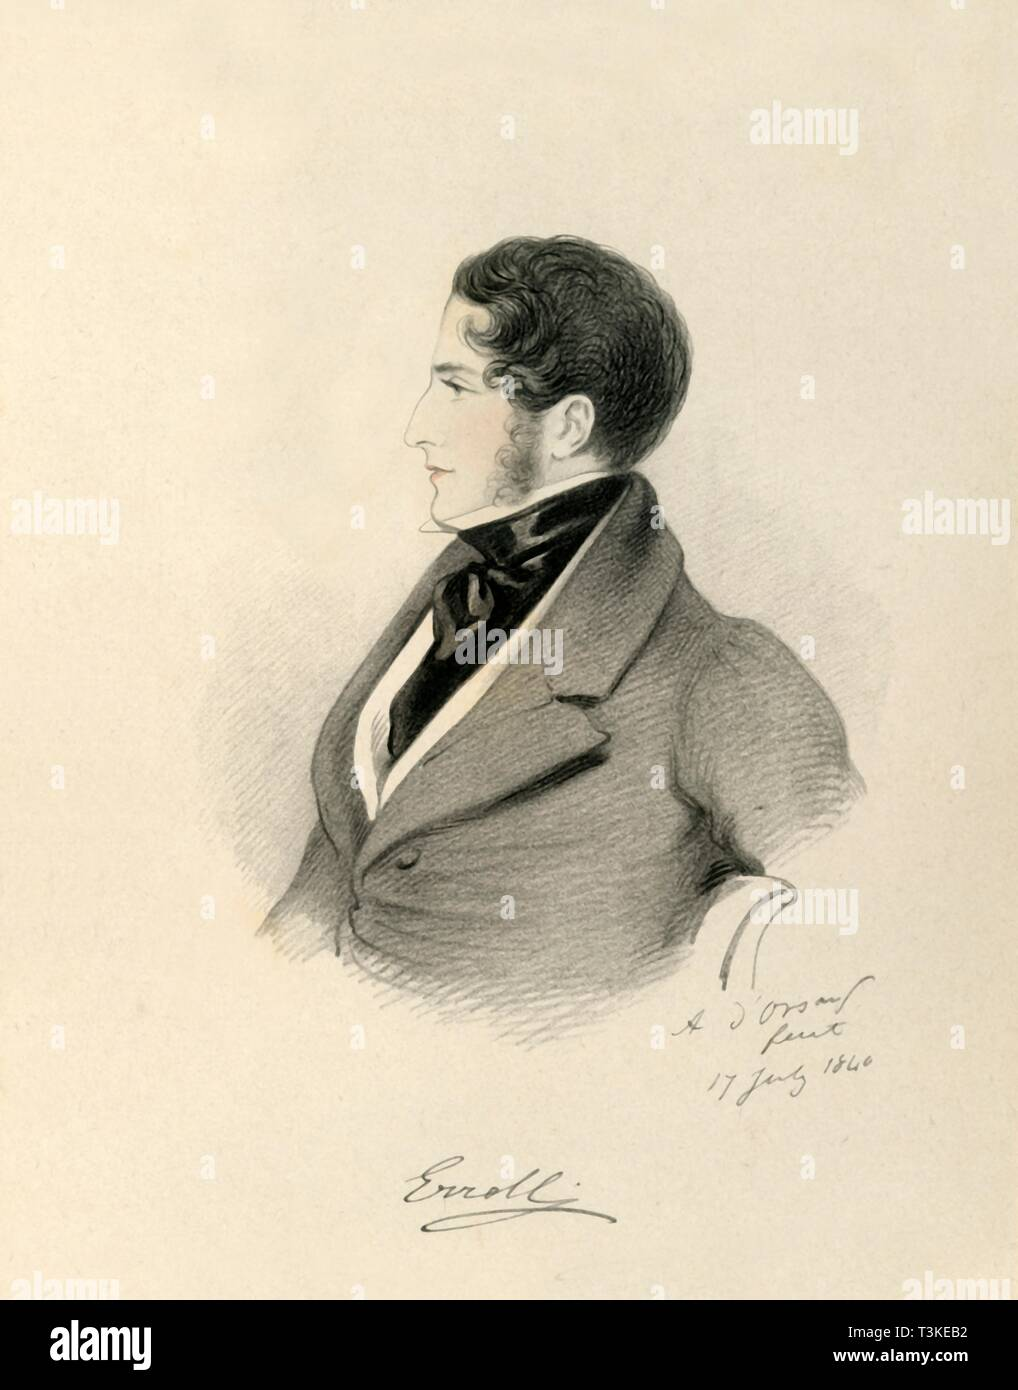 """'Erroll', 1840. Portrait of William George Hay, 18th Earl of Erroll (1801-1846), Scottish peer and politician. From """"Portraits by Count D'Orsay"""", an album assembled by Lady Georgiana Codrington. [1850s] Stock Photo"""